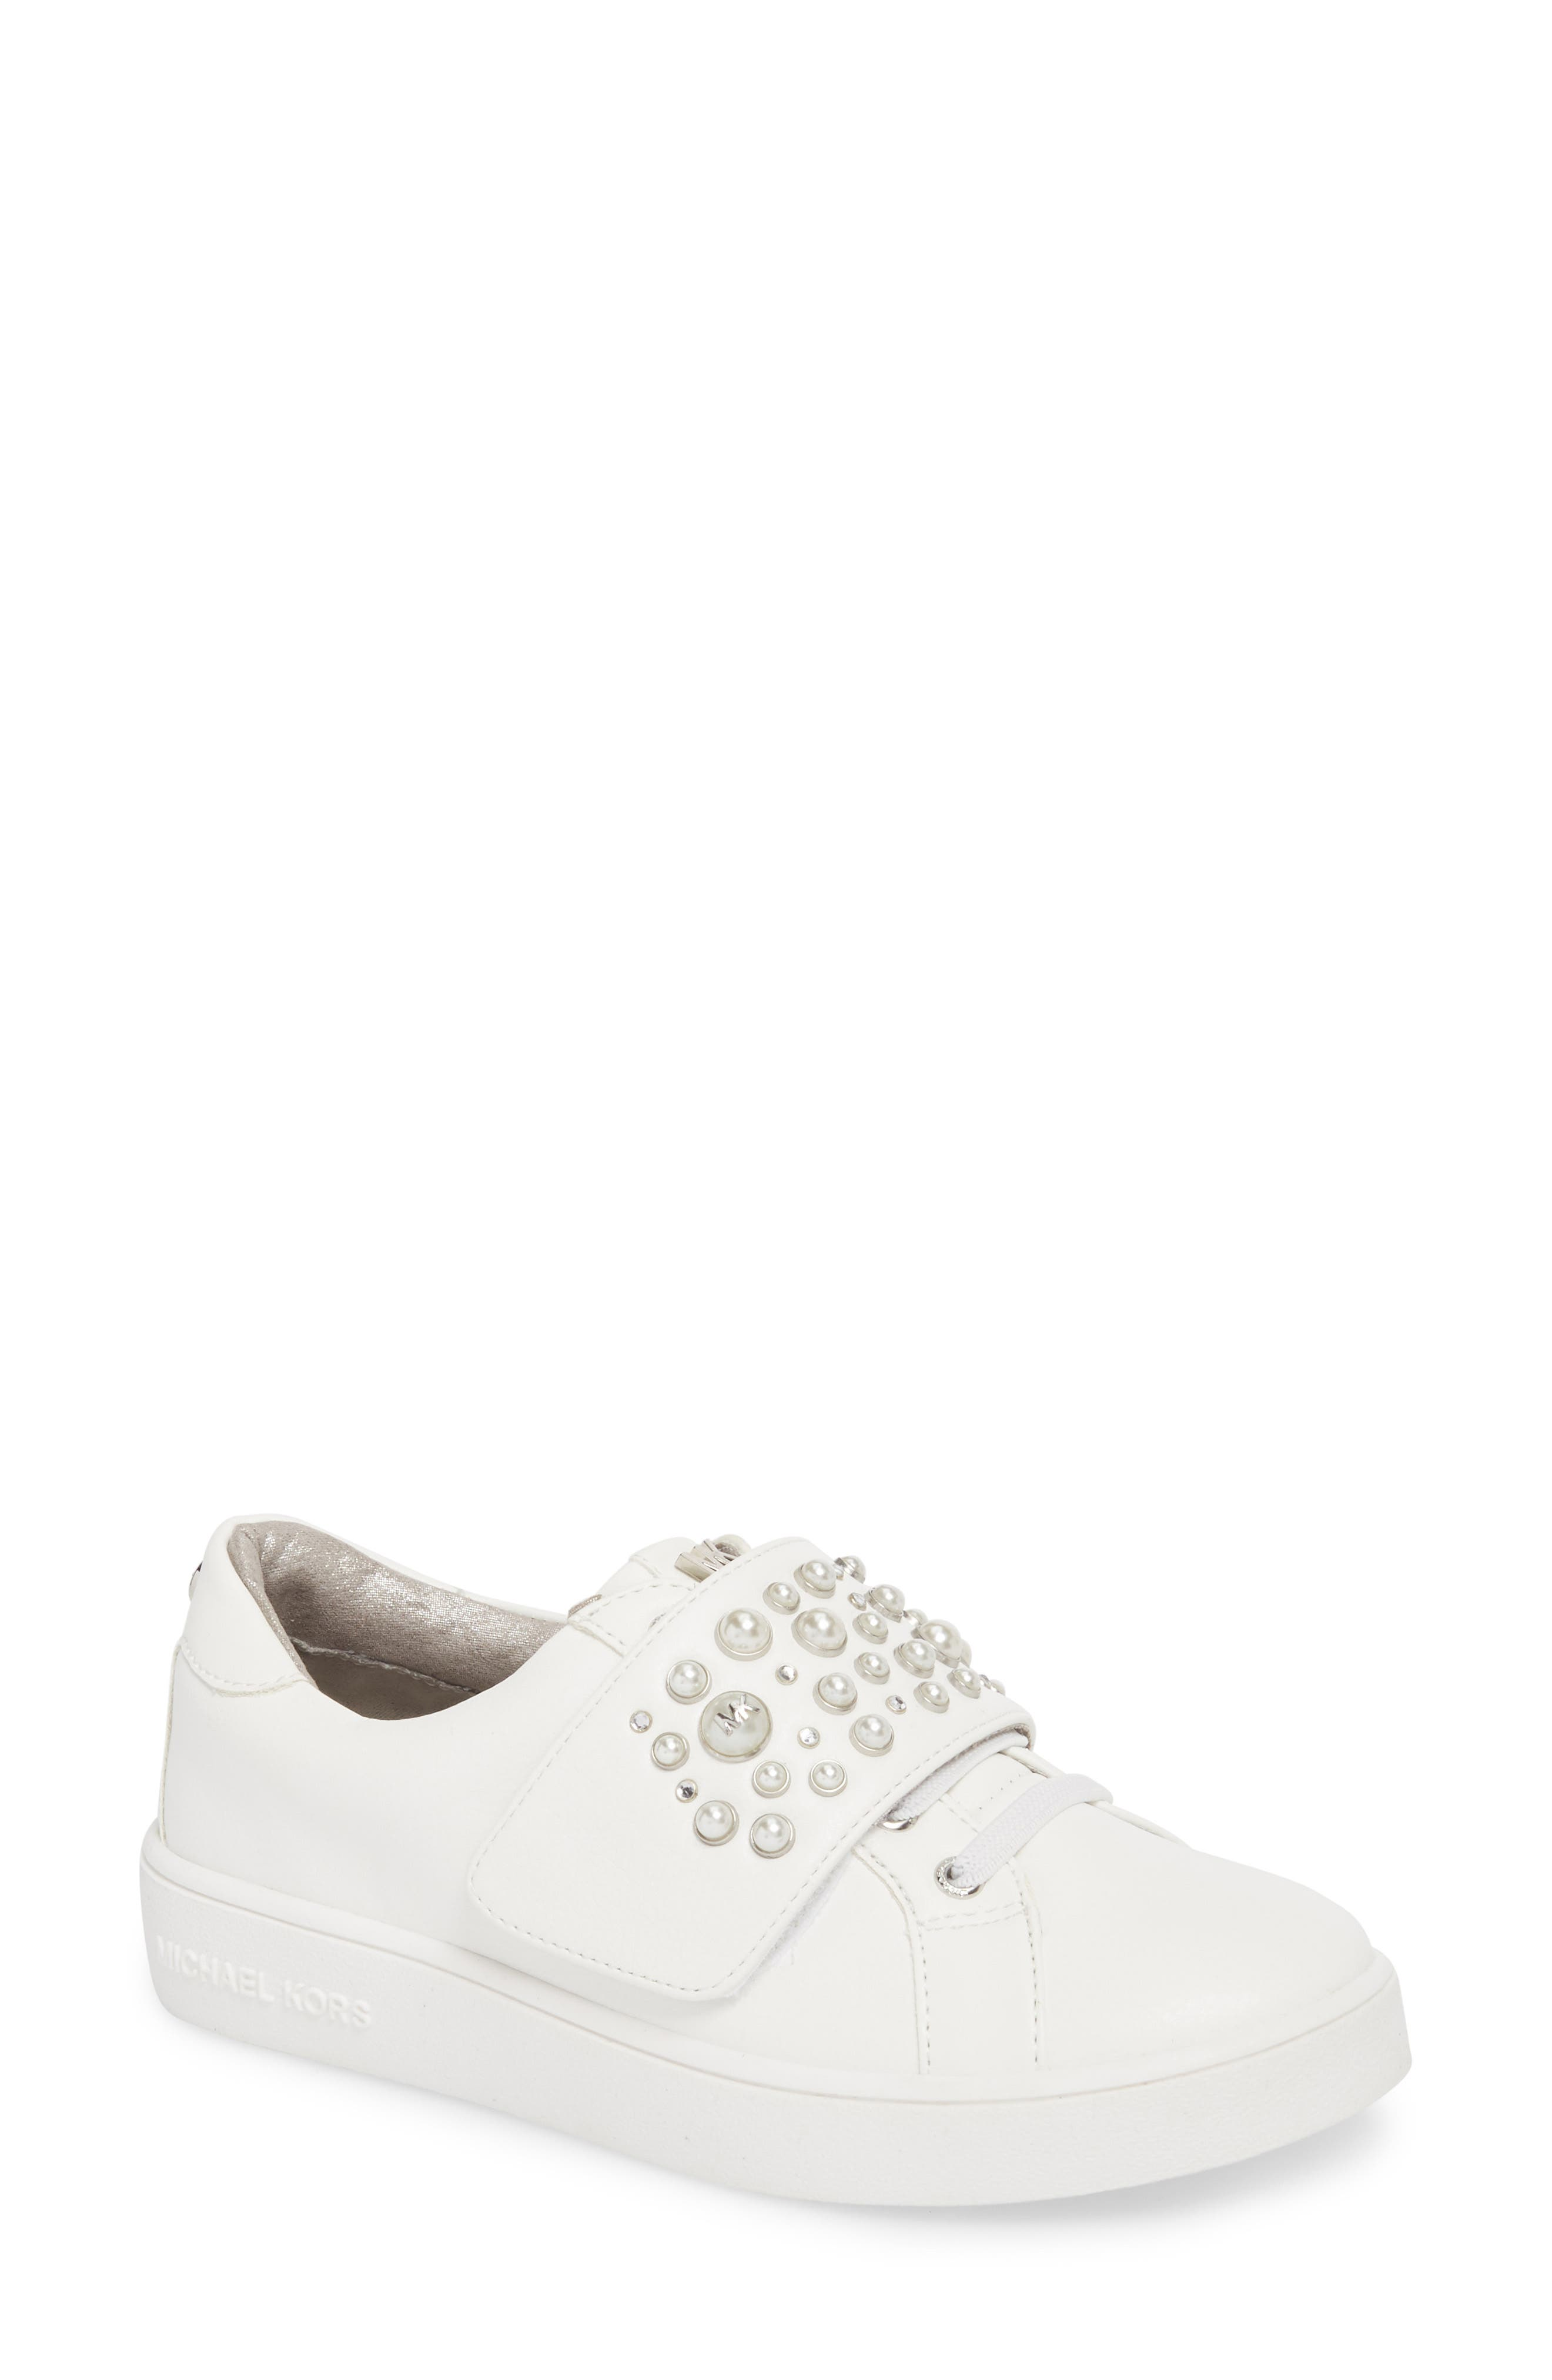 Ivy Embellished Metallic Sneaker,                         Main,                         color, White